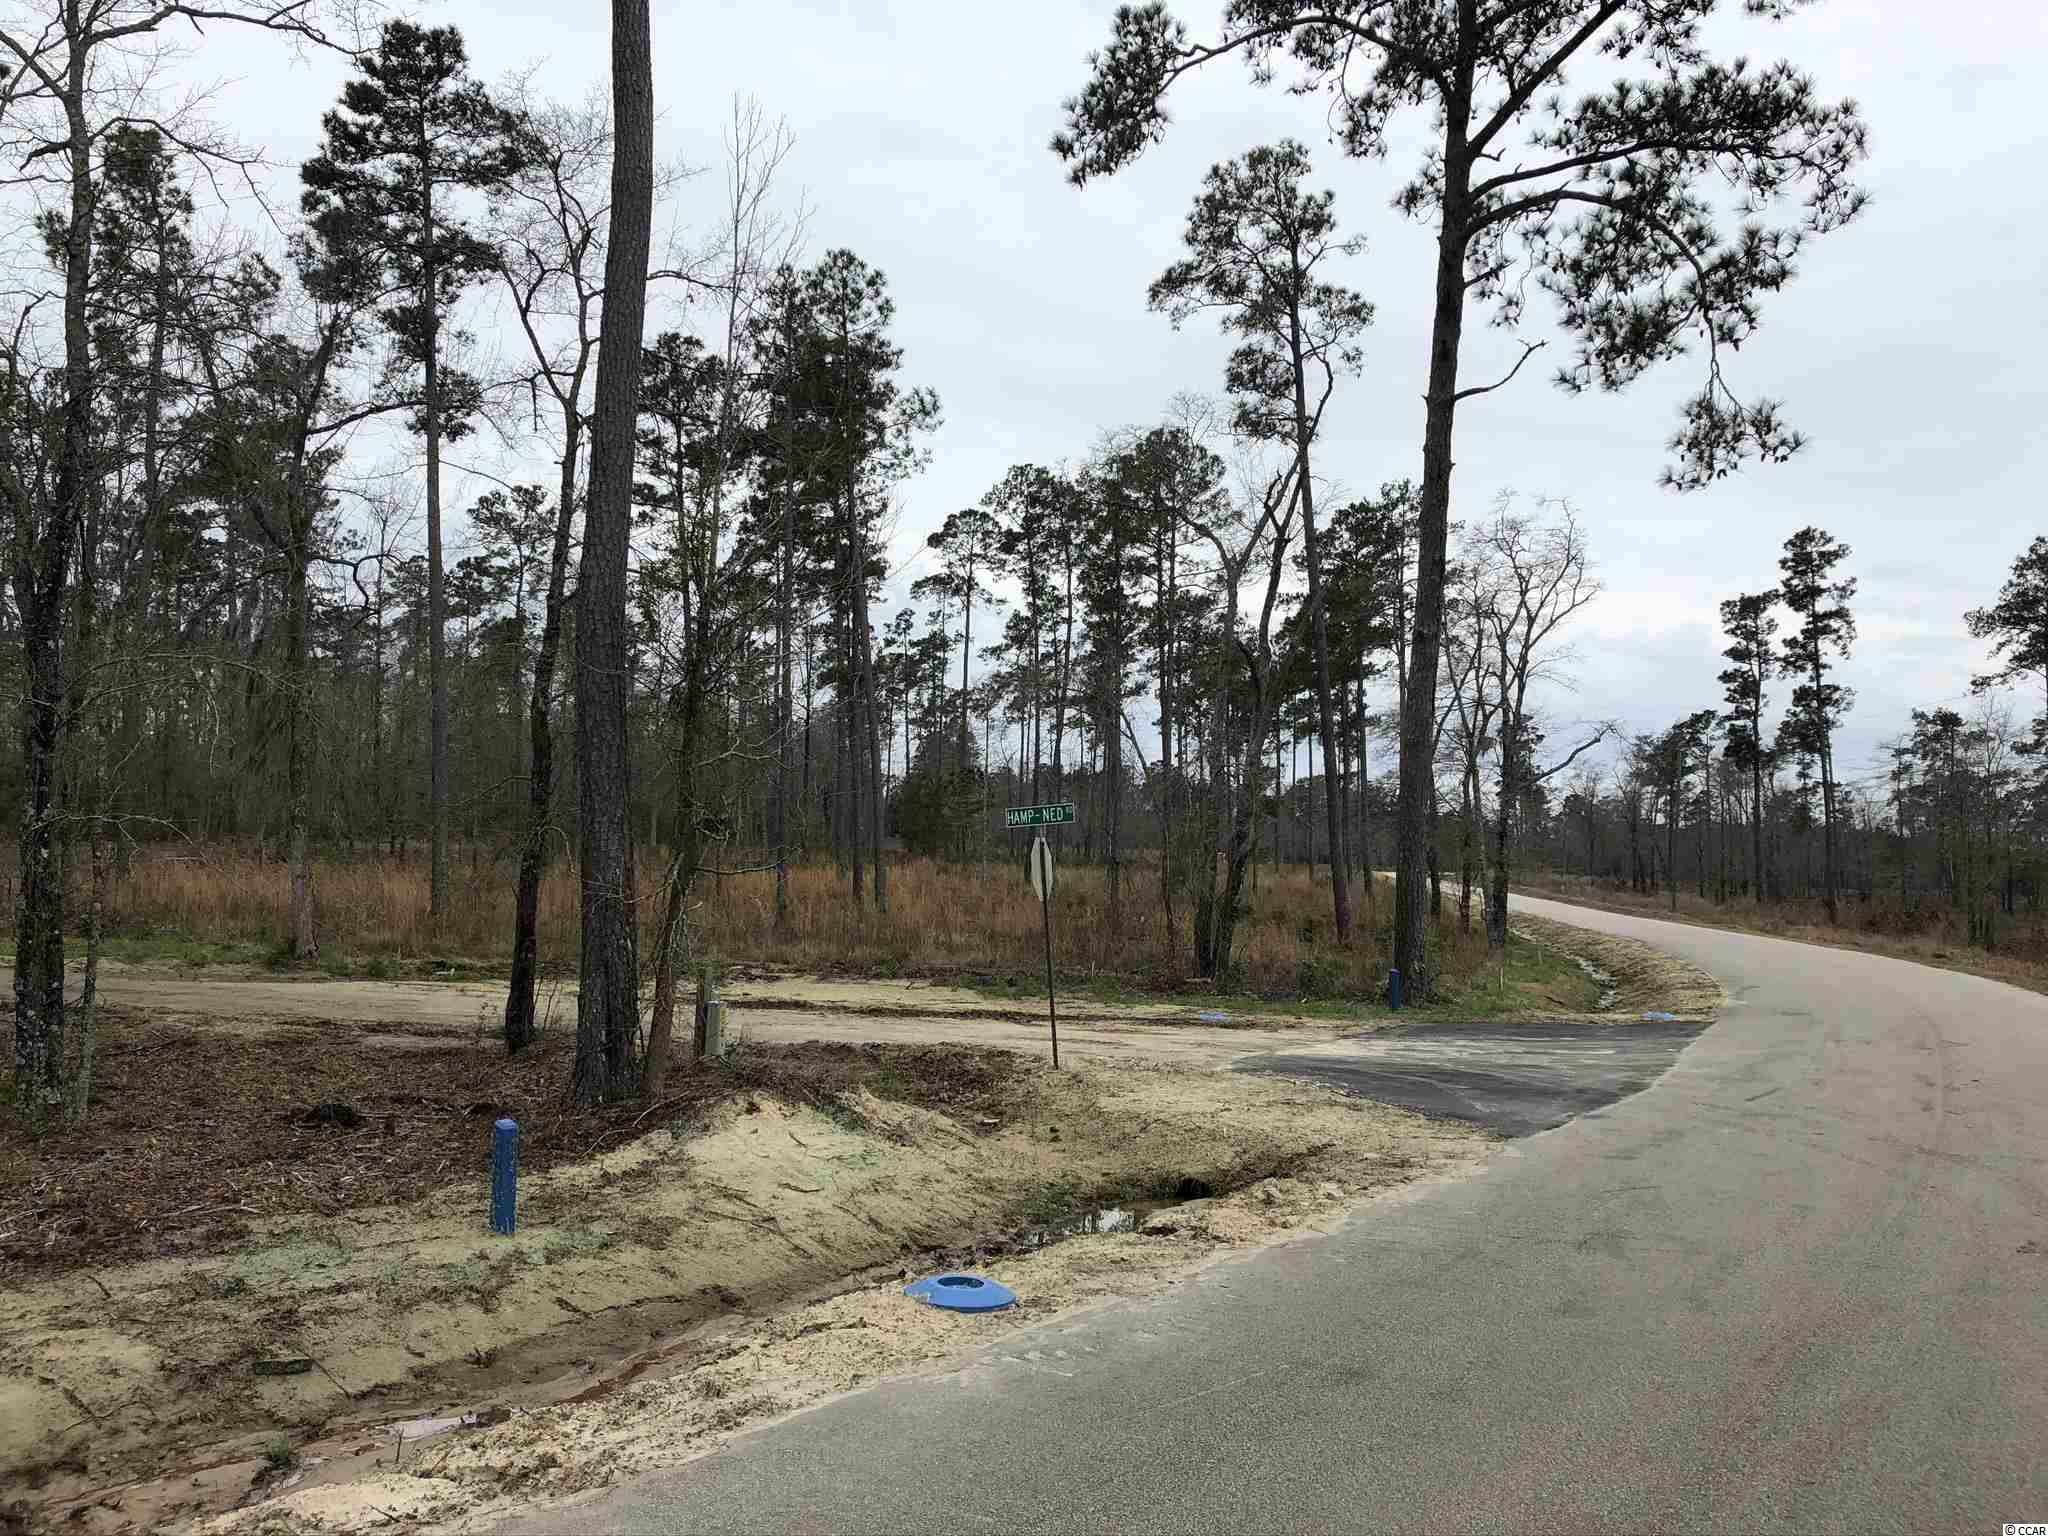 7 of 28 Lots Available in single takedown.  Remaining lots available in 6-9 months.  Water tap fees paid and public water installed to sites.  Septic permits in hand and 1 septic tank installed.  All sites from county roads.  Deed restrictions - Stick Built Only.  Sites are cleared and platted.